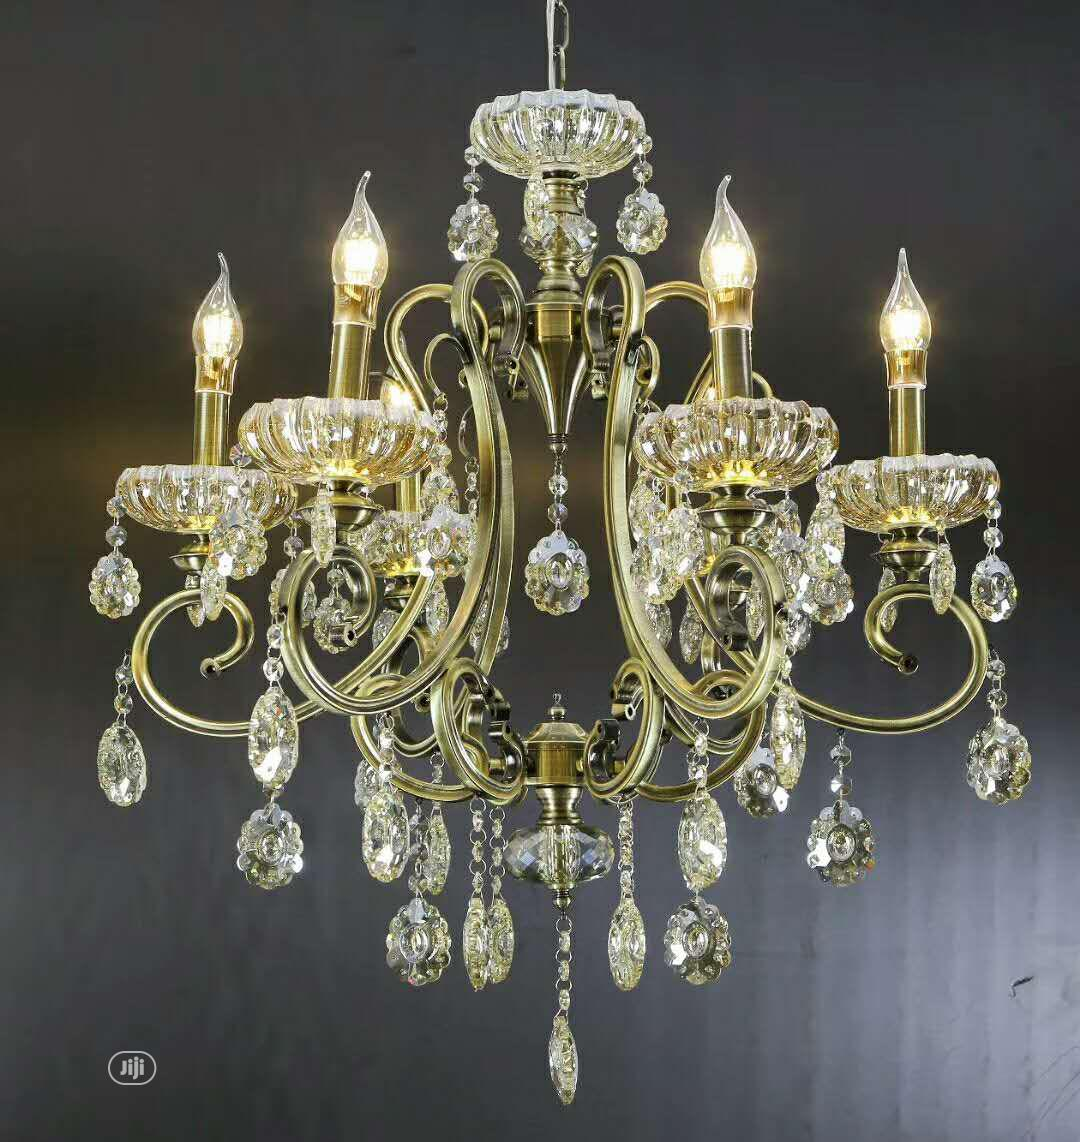 Beautiful Candle Chandelier Light For Your Sitting Room